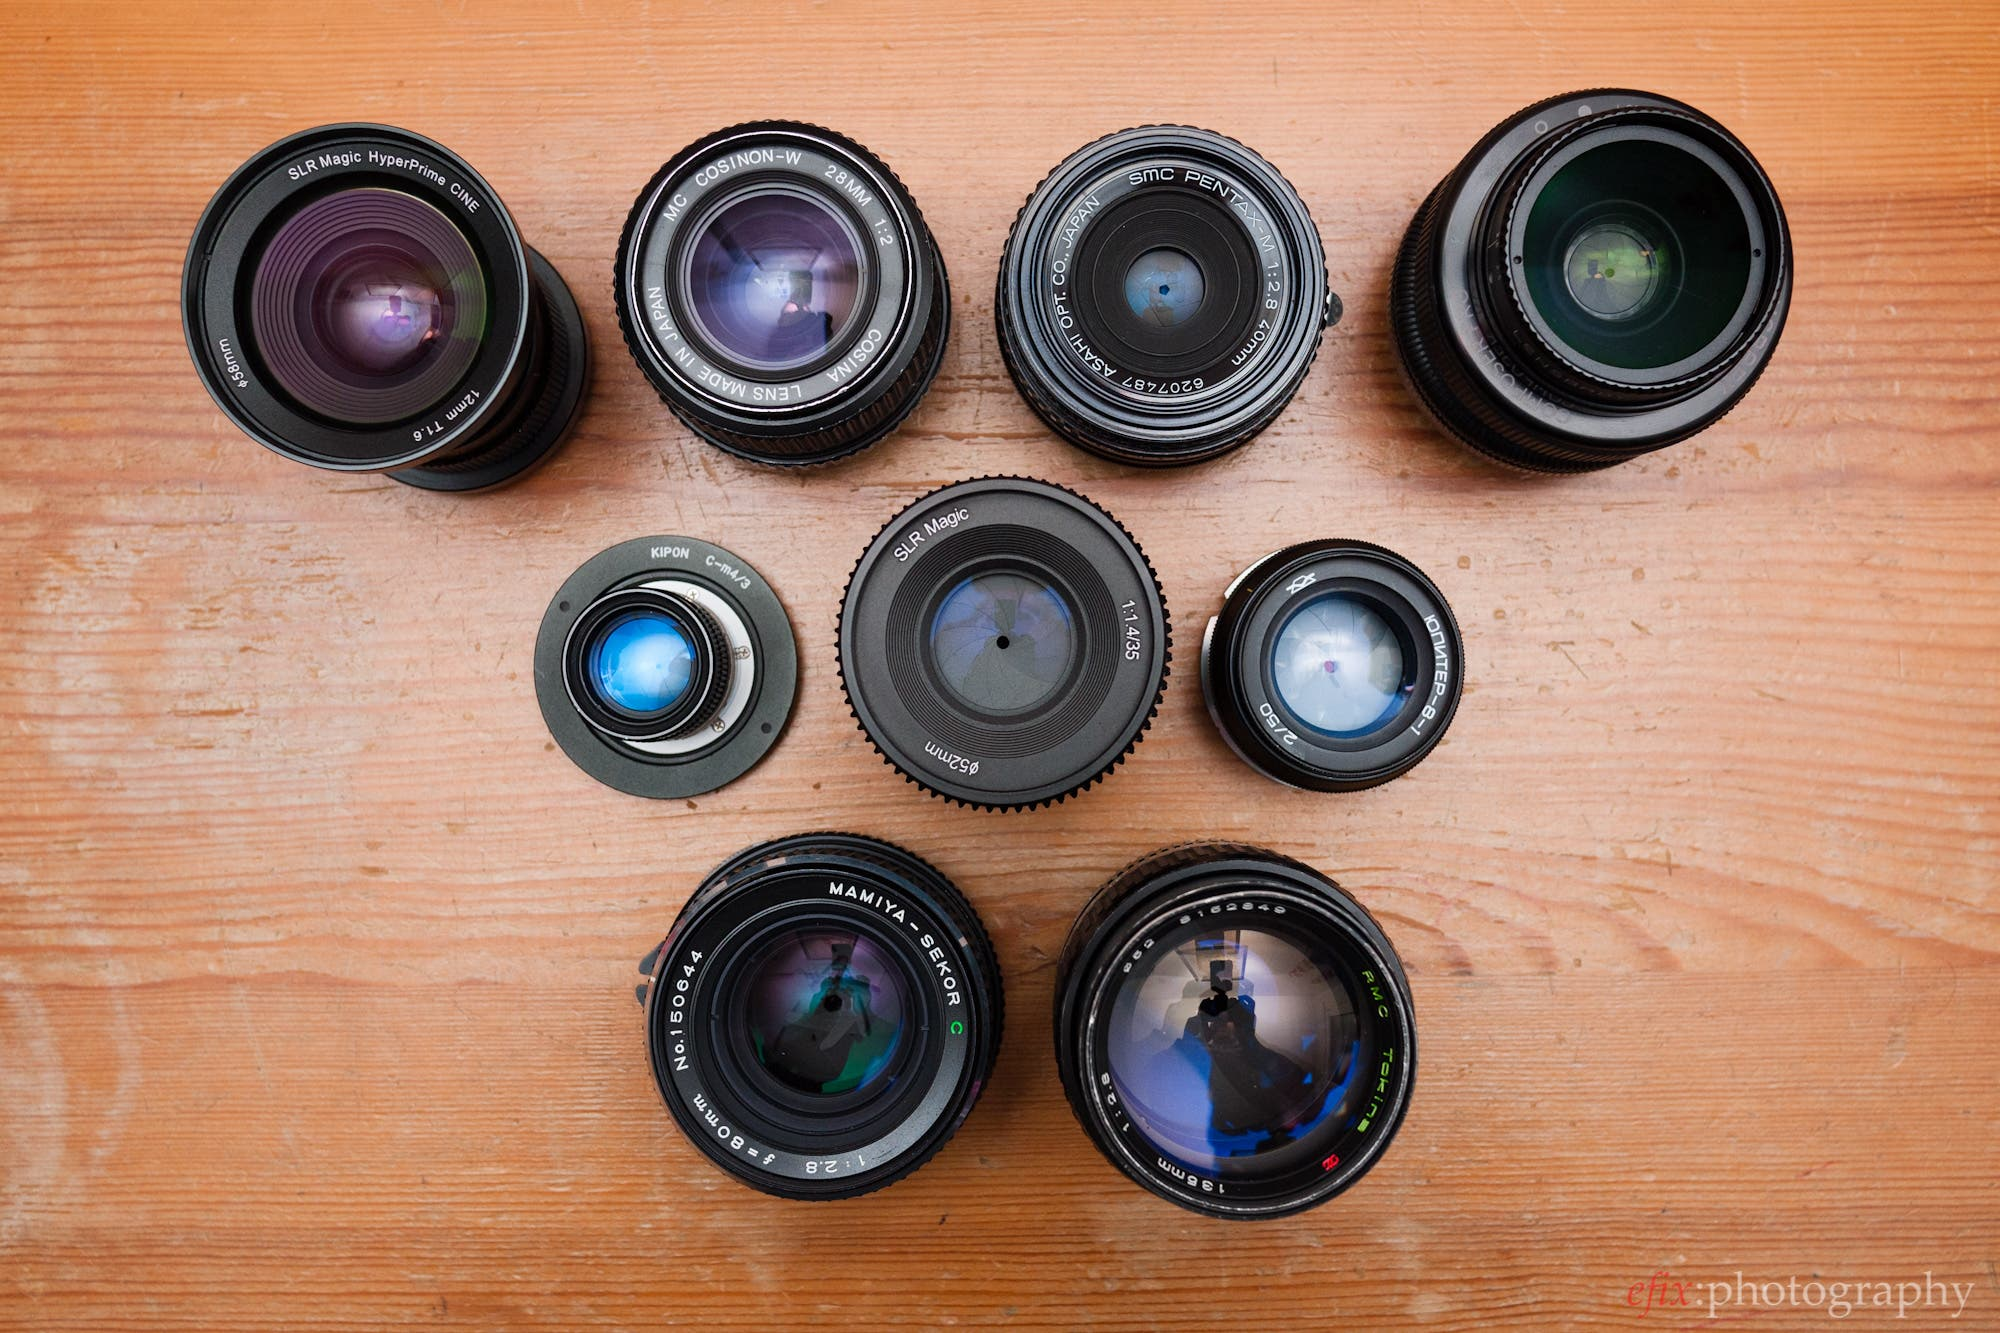 The Basics of Photography: A for Aperture